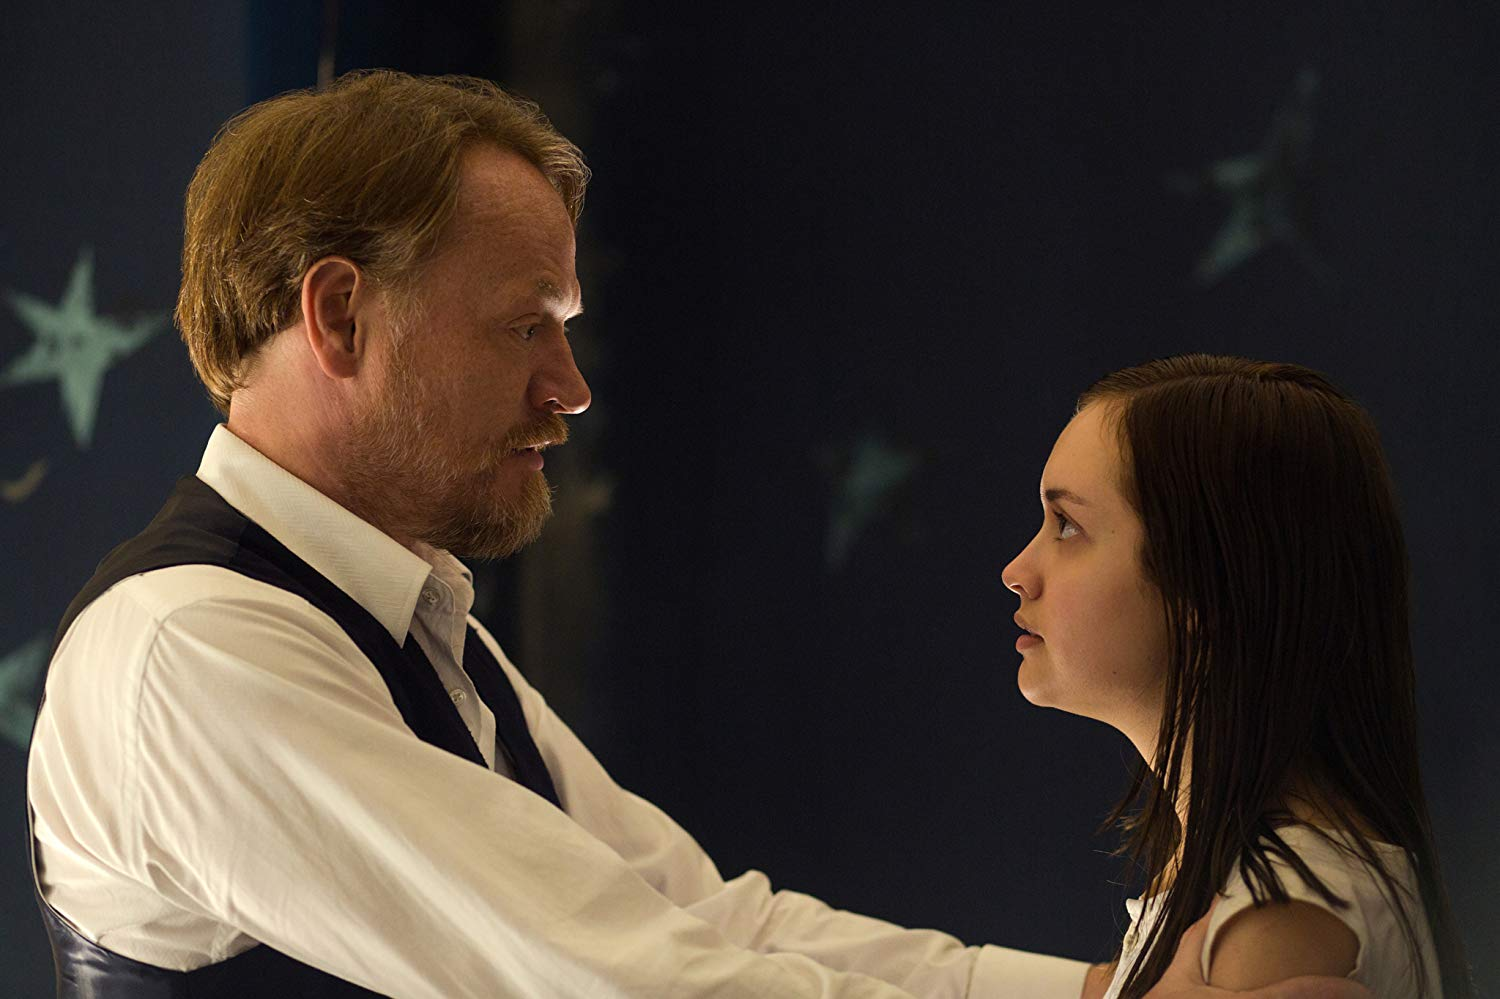 Professor Coupland (Jared Harris) and his subject Olivia Cooke in The Quiet Ones (2014)